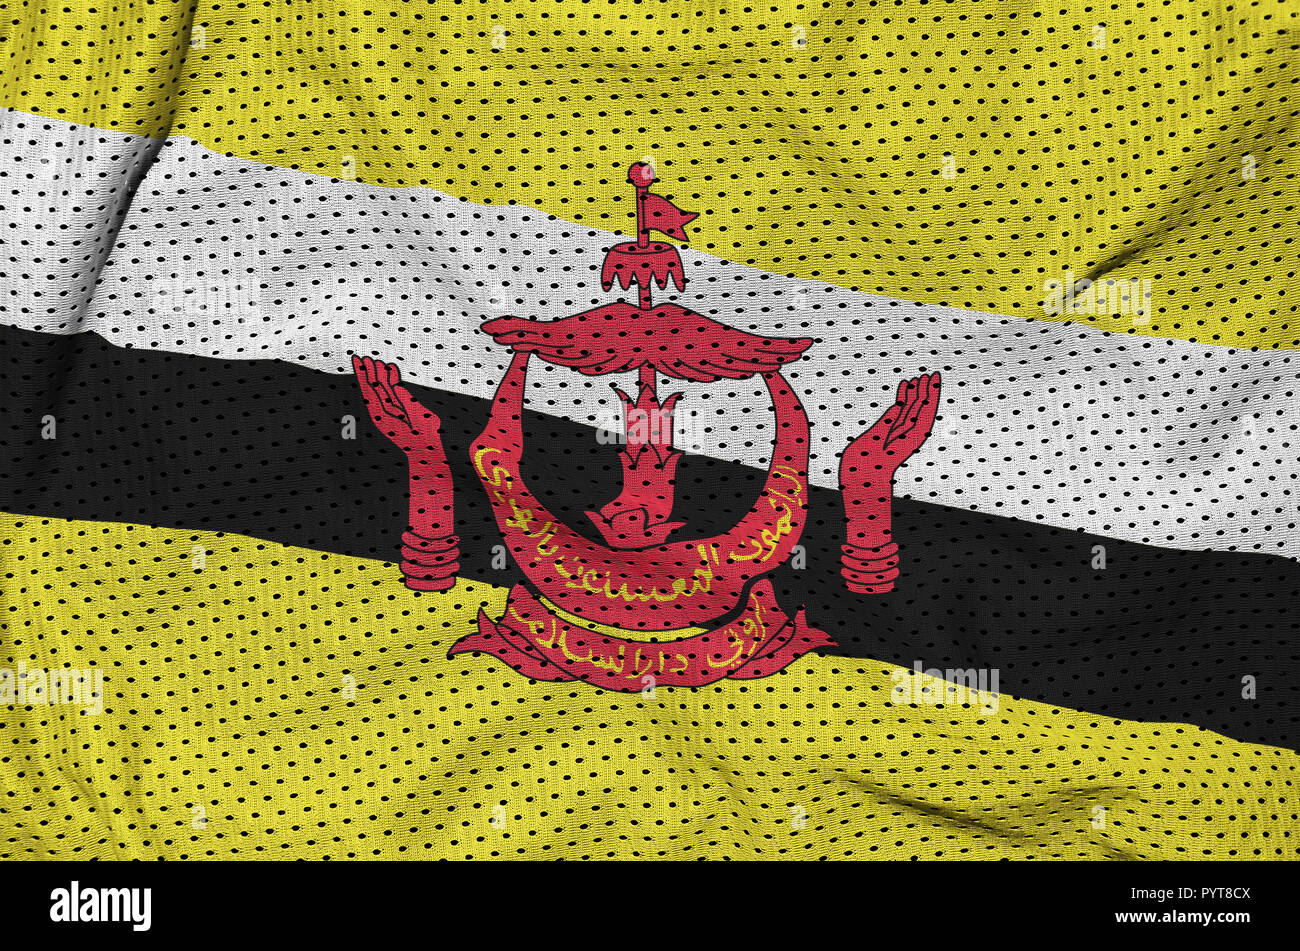 Brunei Darussalam flag printed on a polyester nylon sportswear mesh fabric with some folds - Stock Image